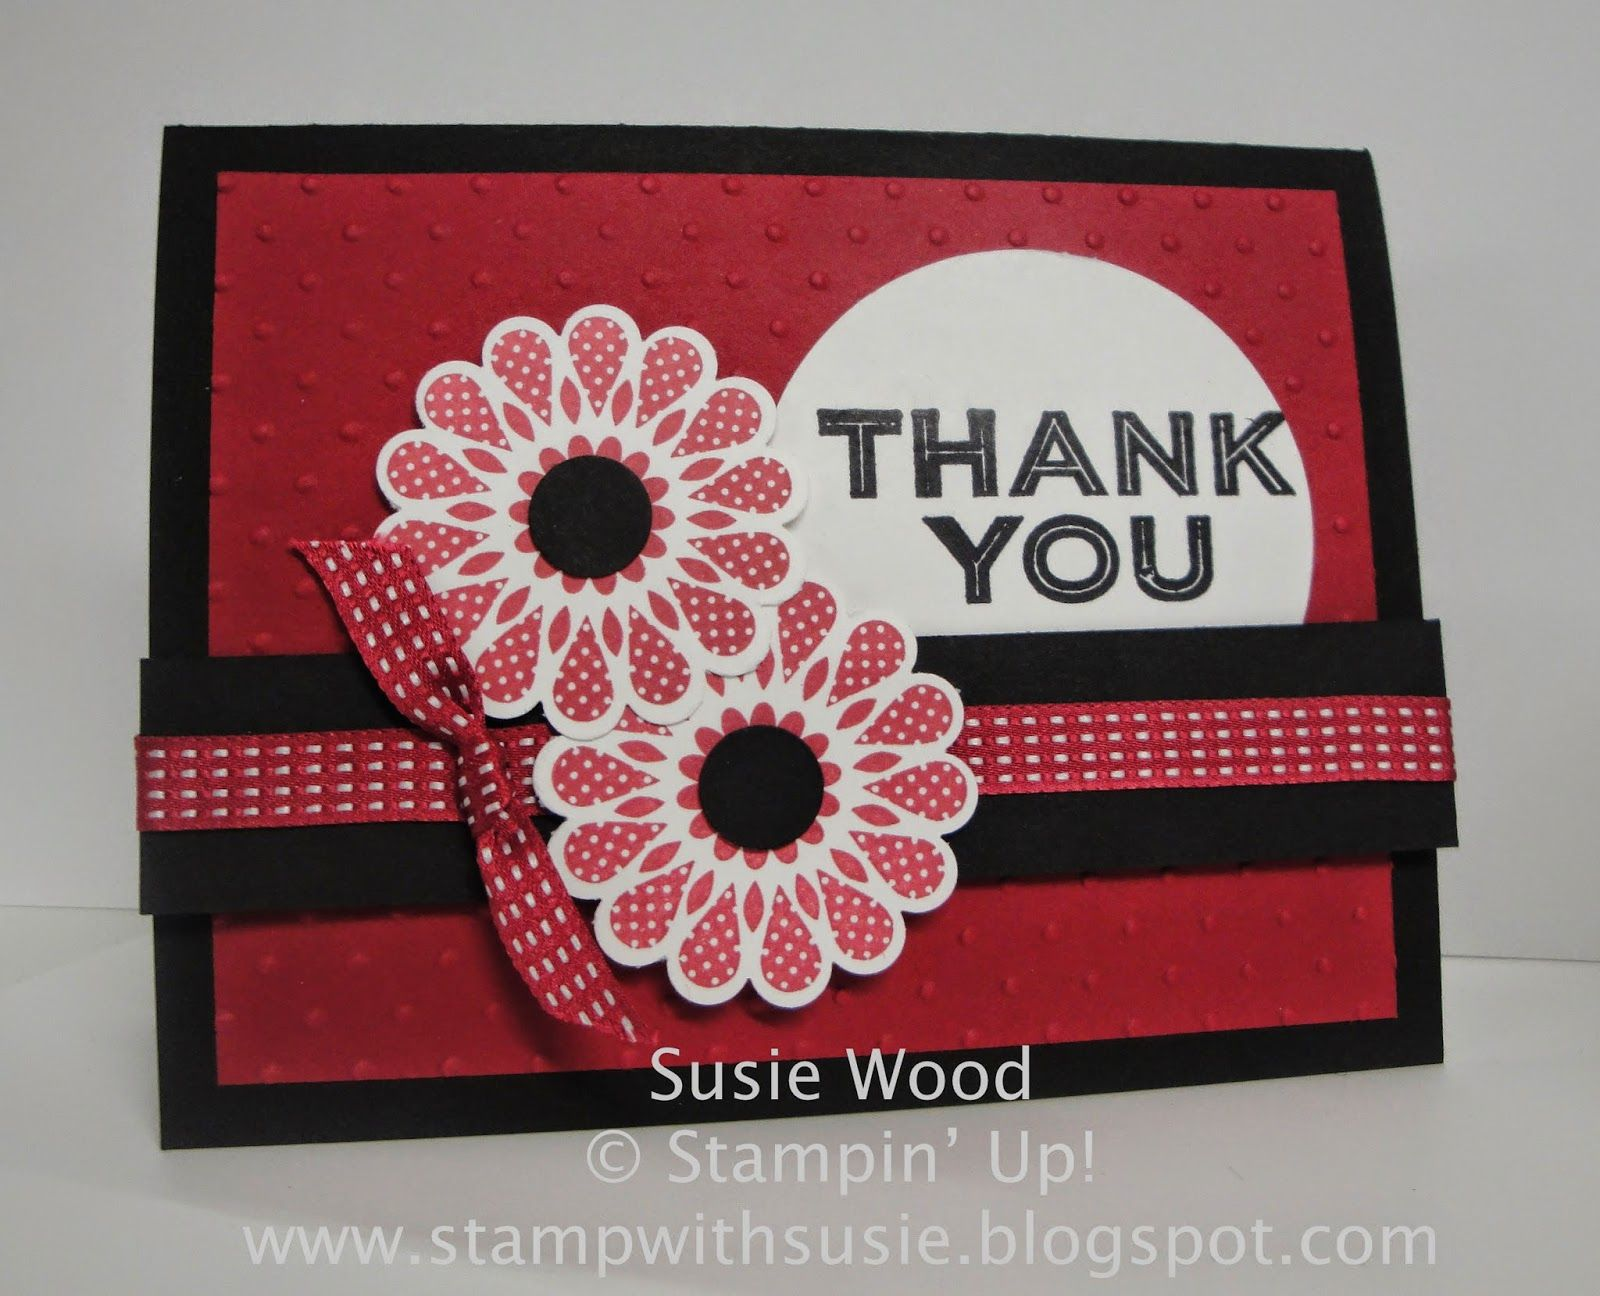 Stampin' Up!- 'Simply Create' with 'Polka-Dot Pieces'